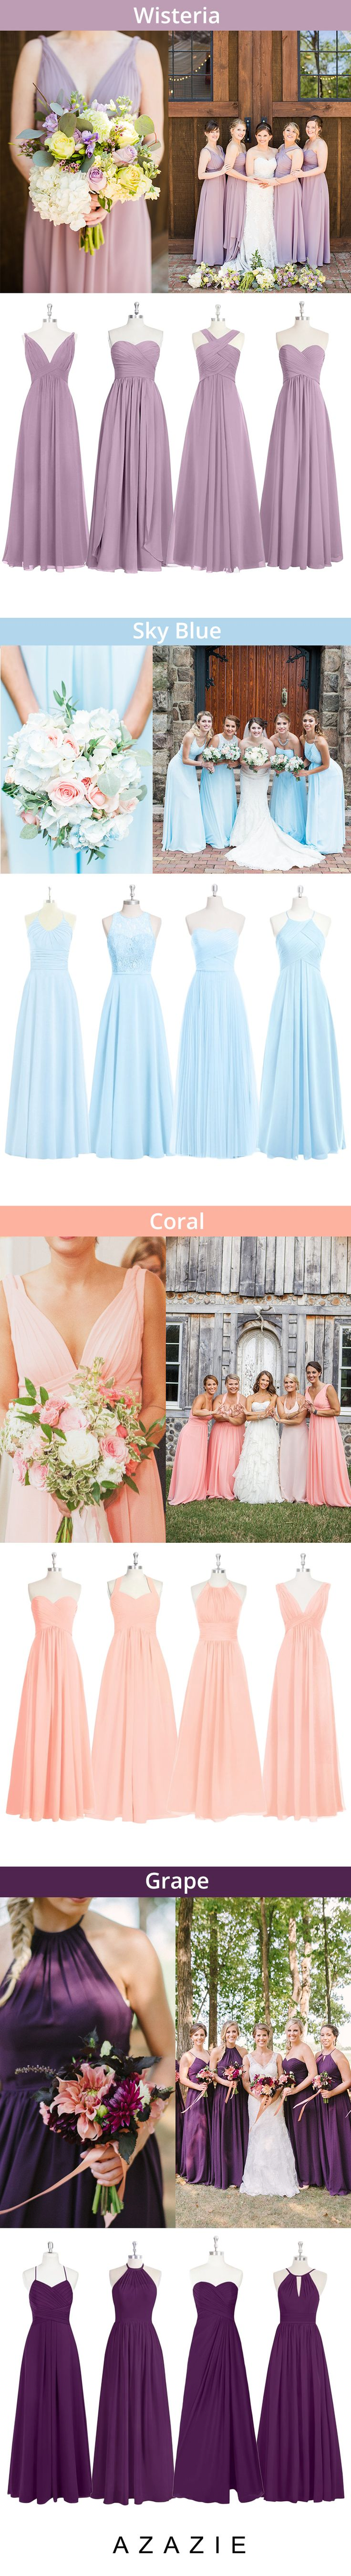 Best 25+ Coral colored bridesmaid dresses ideas on Pinterest | On trend  dresses, Coral dress for wedding and Wedding occasion dresses